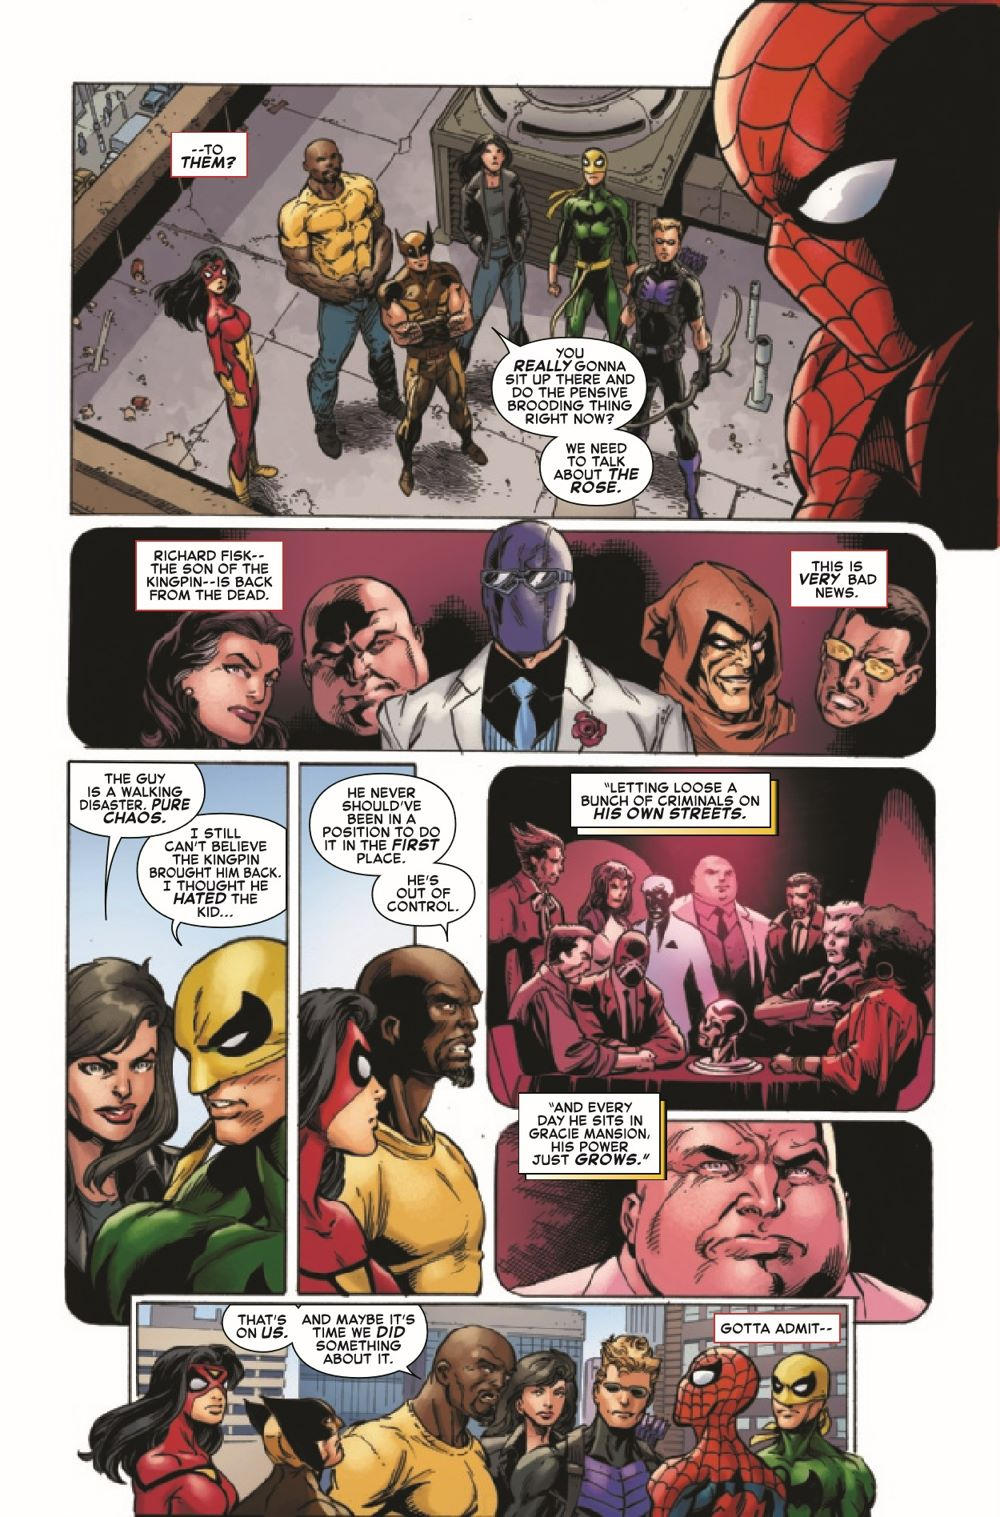 ASM2018066_Preview-6 ComicList Previews: THE AMAZING SPIDER-MAN #66